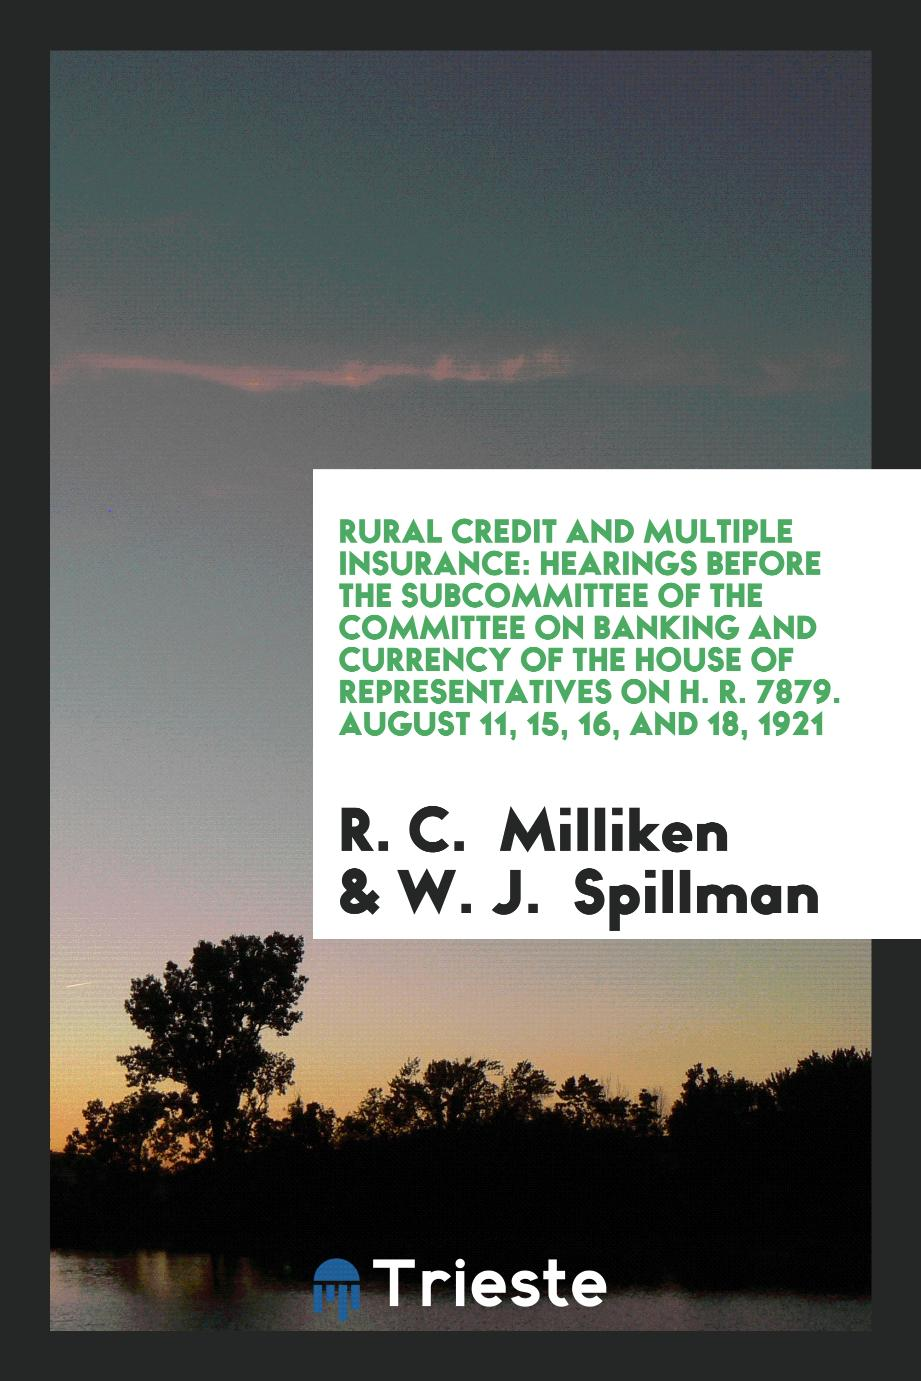 Rural Credit and Multiple Insurance: Hearings Before the Subcommittee of the Committee on banking and currency of the house of representatives on H. R. 7879. August 11, 15, 16, and 18, 1921